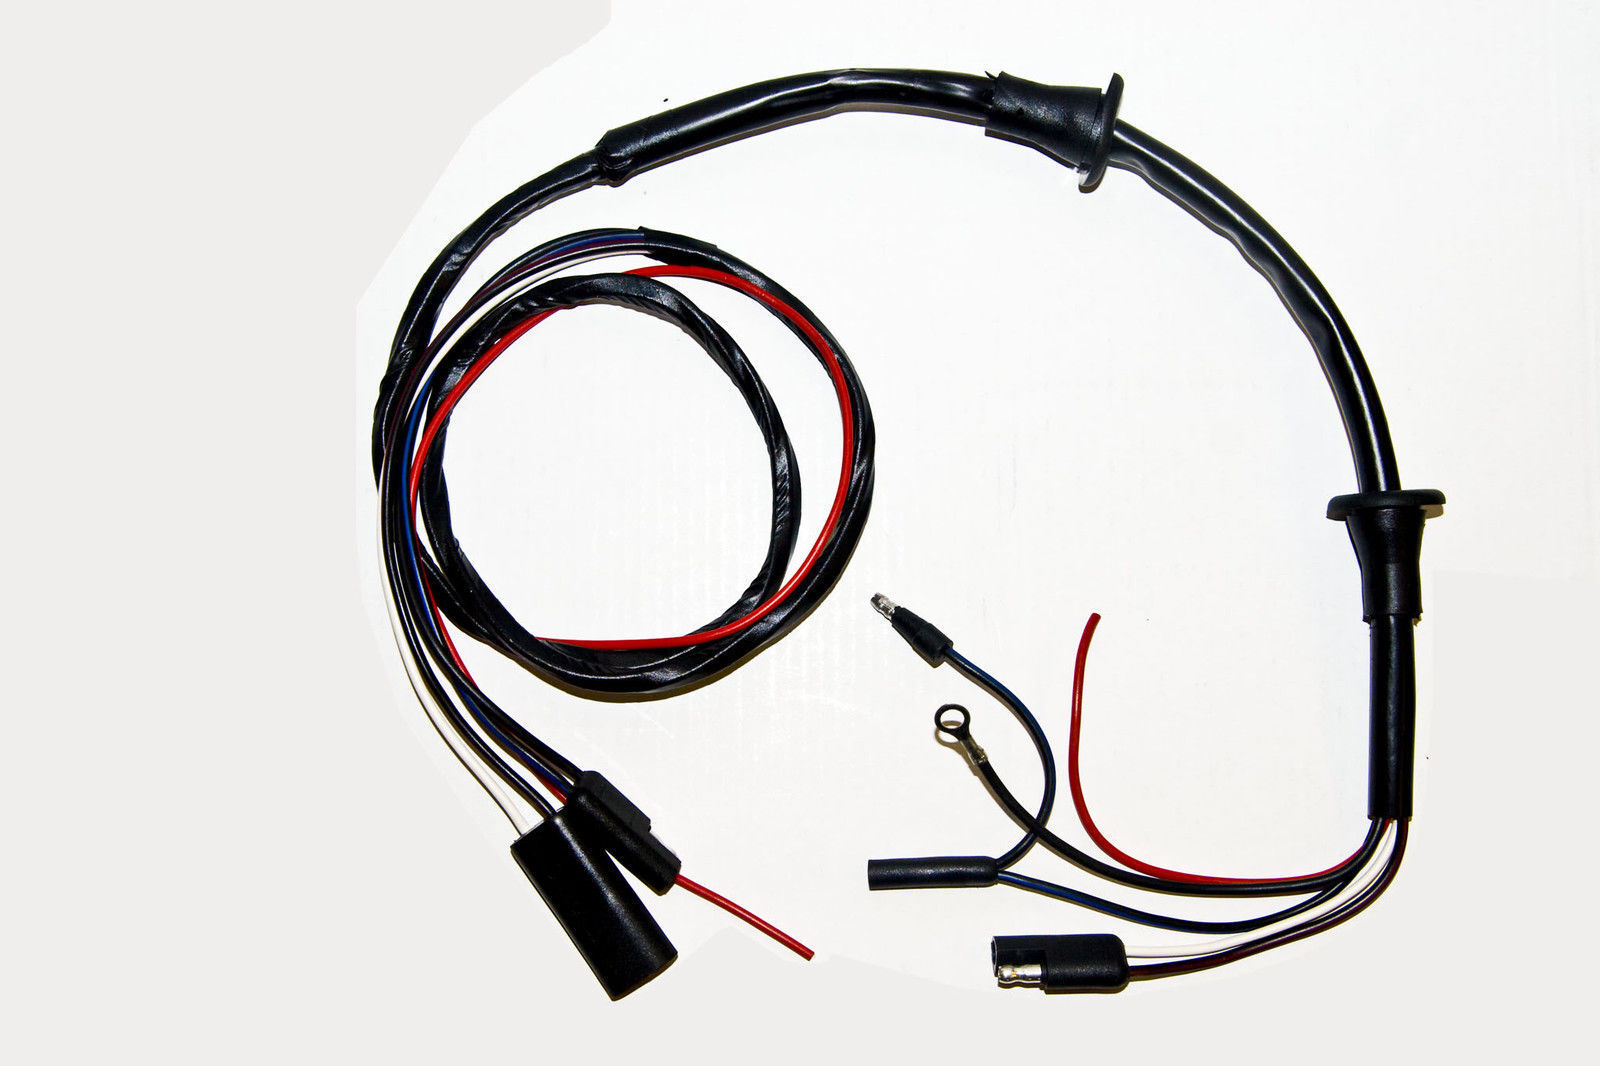 hight resolution of 1967 1968 ford mustang door courtesy light and speaker wire harness